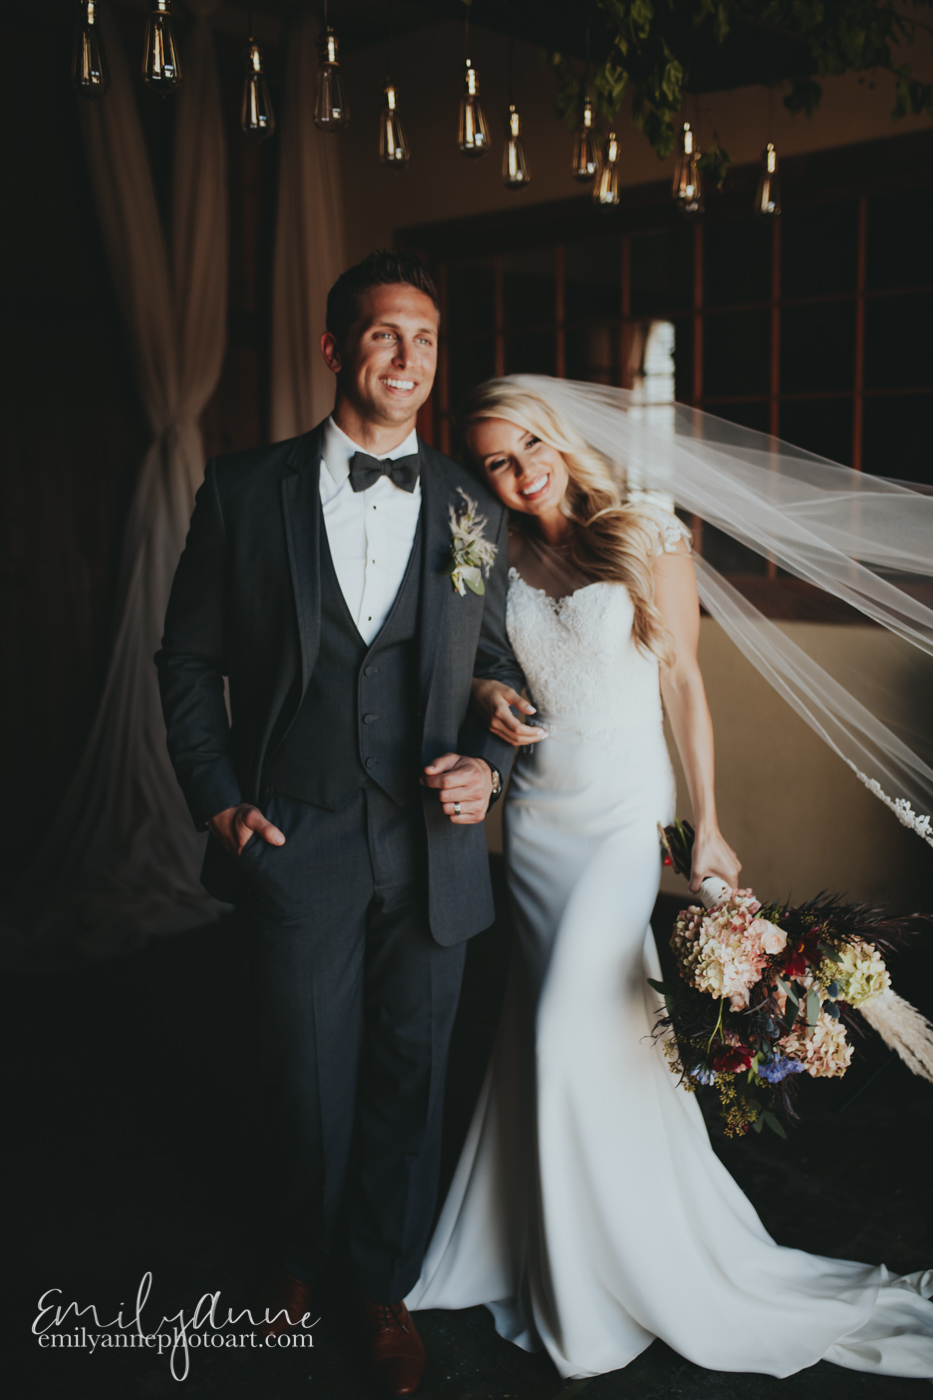 cutest couple wedding inspiration ideas for top wedding venue in Nashville Foundry Events The Foundry by Best Wedding Photographer Emily Anne